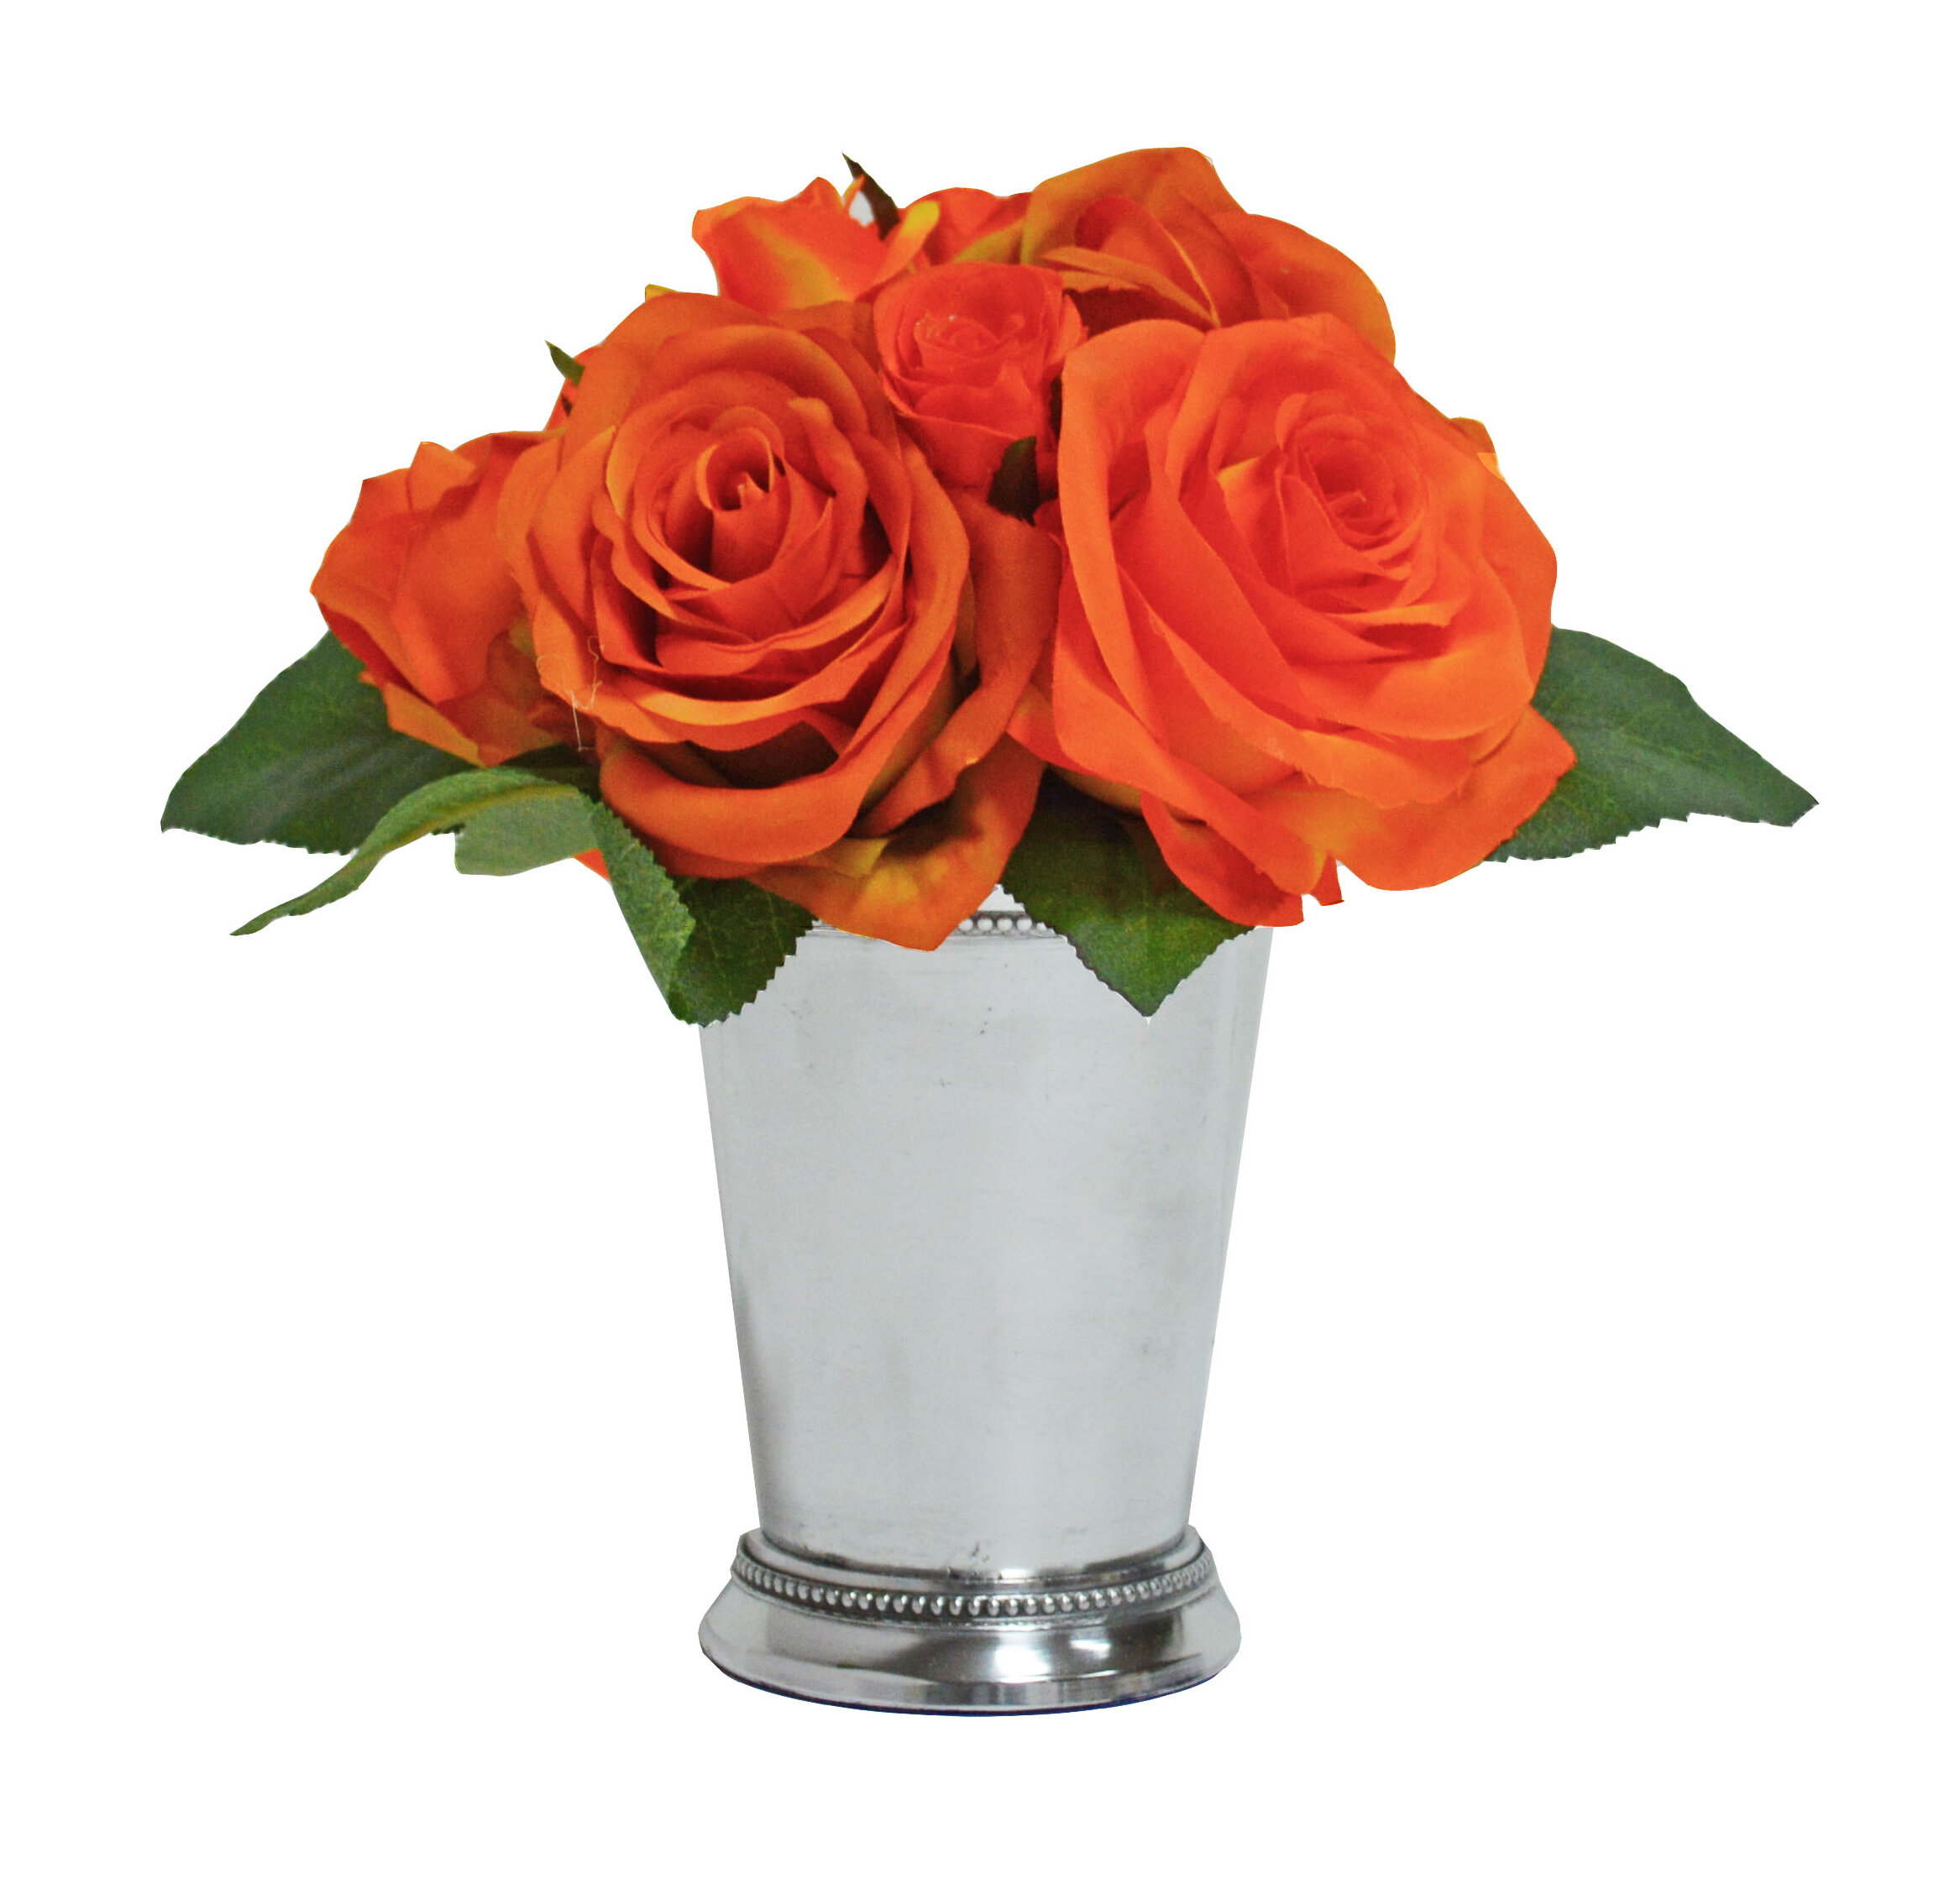 Tree masters inc rose bouquet in mint julep cup reviews wayfair reviewsmspy